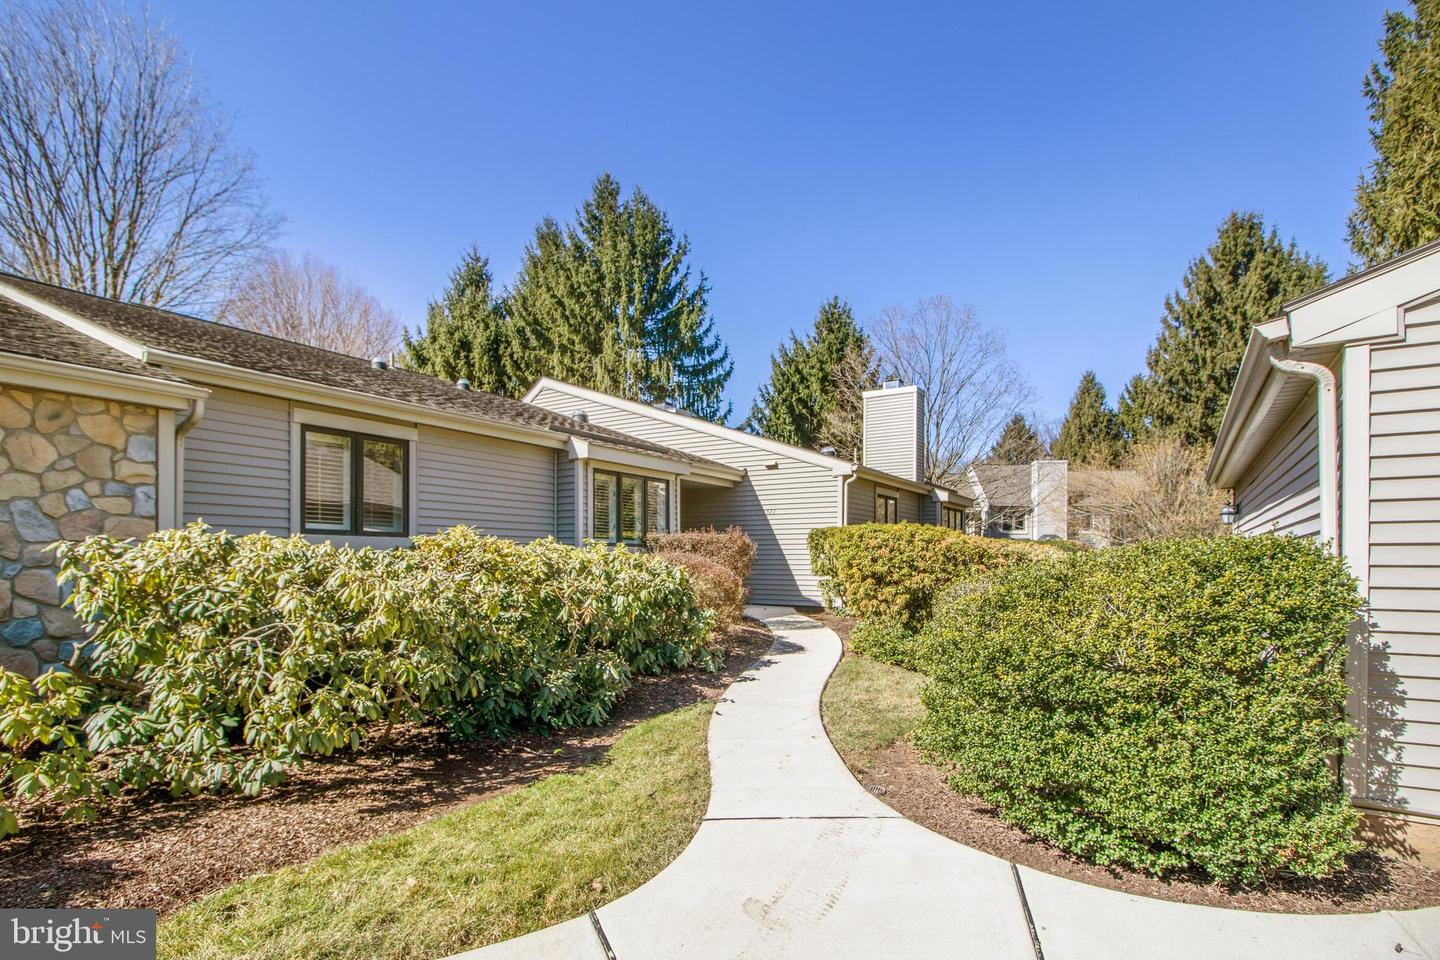 571 Franklin Way West Chester, PA 19380